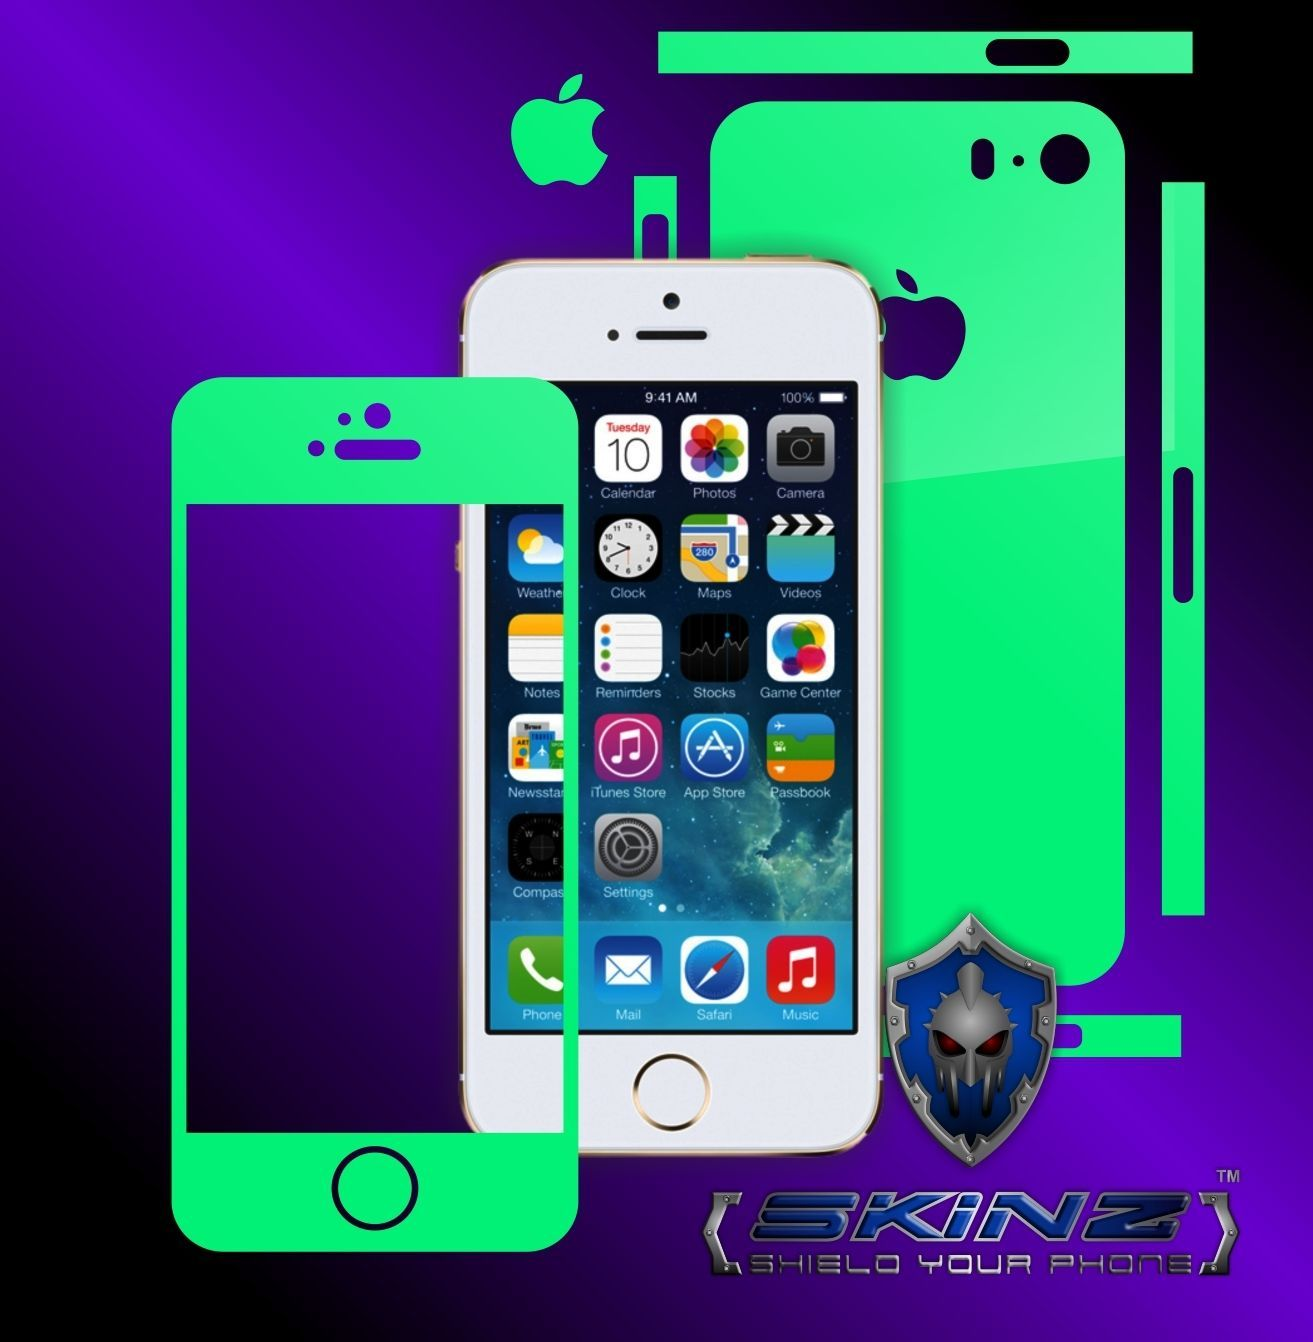 Iphone 5S - Glow in the Dark Skin,Full Body Case Cover Protector,Decal Wrap